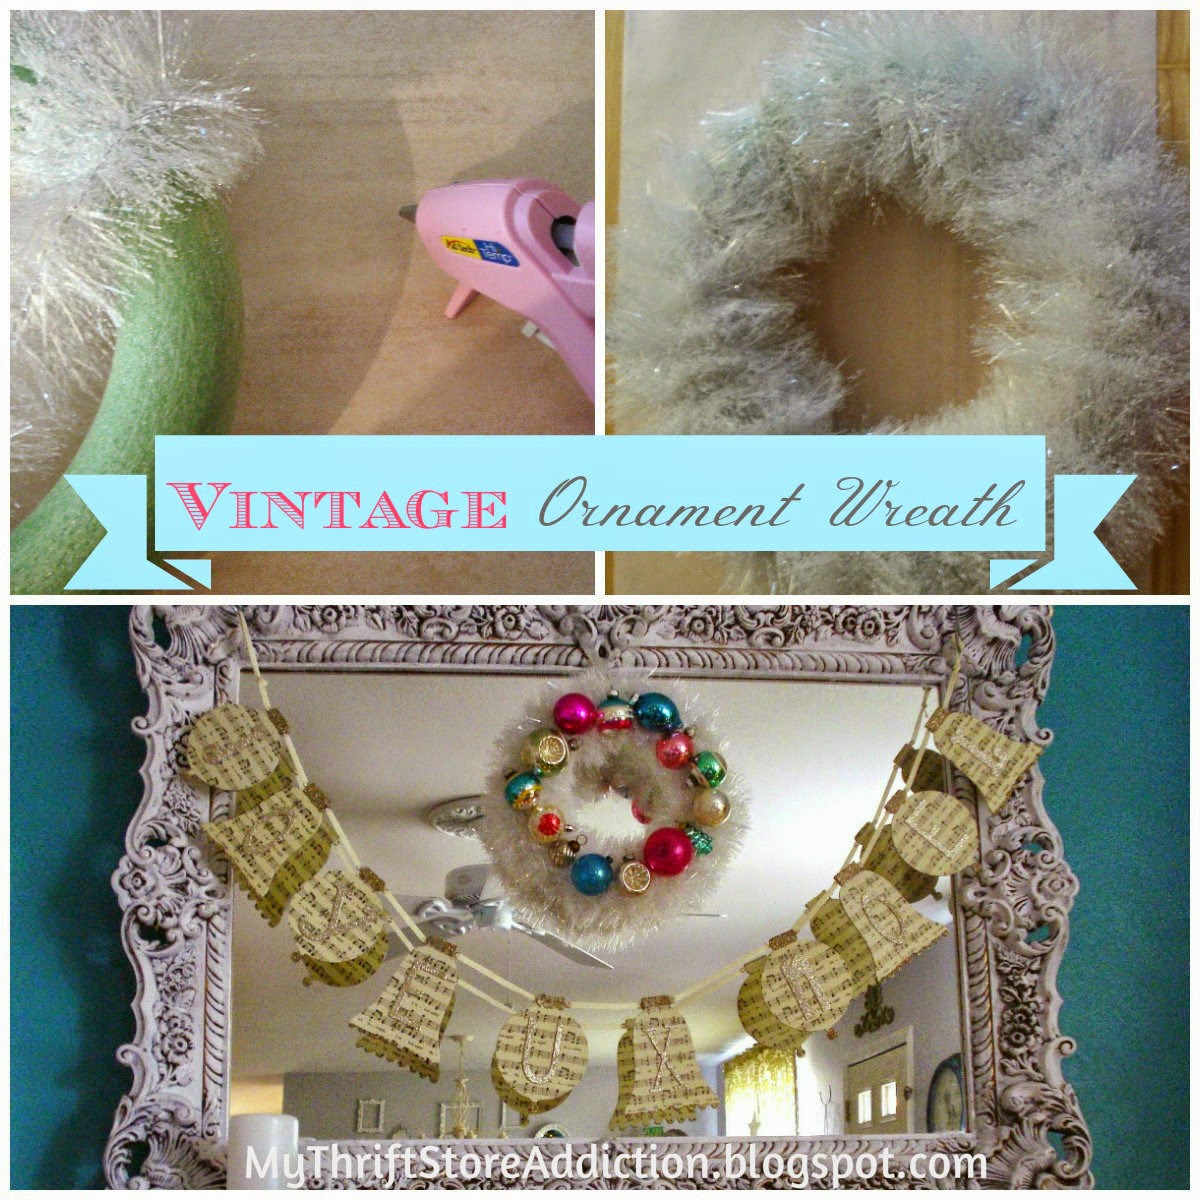 DIY vintage ornament wreath tutorial